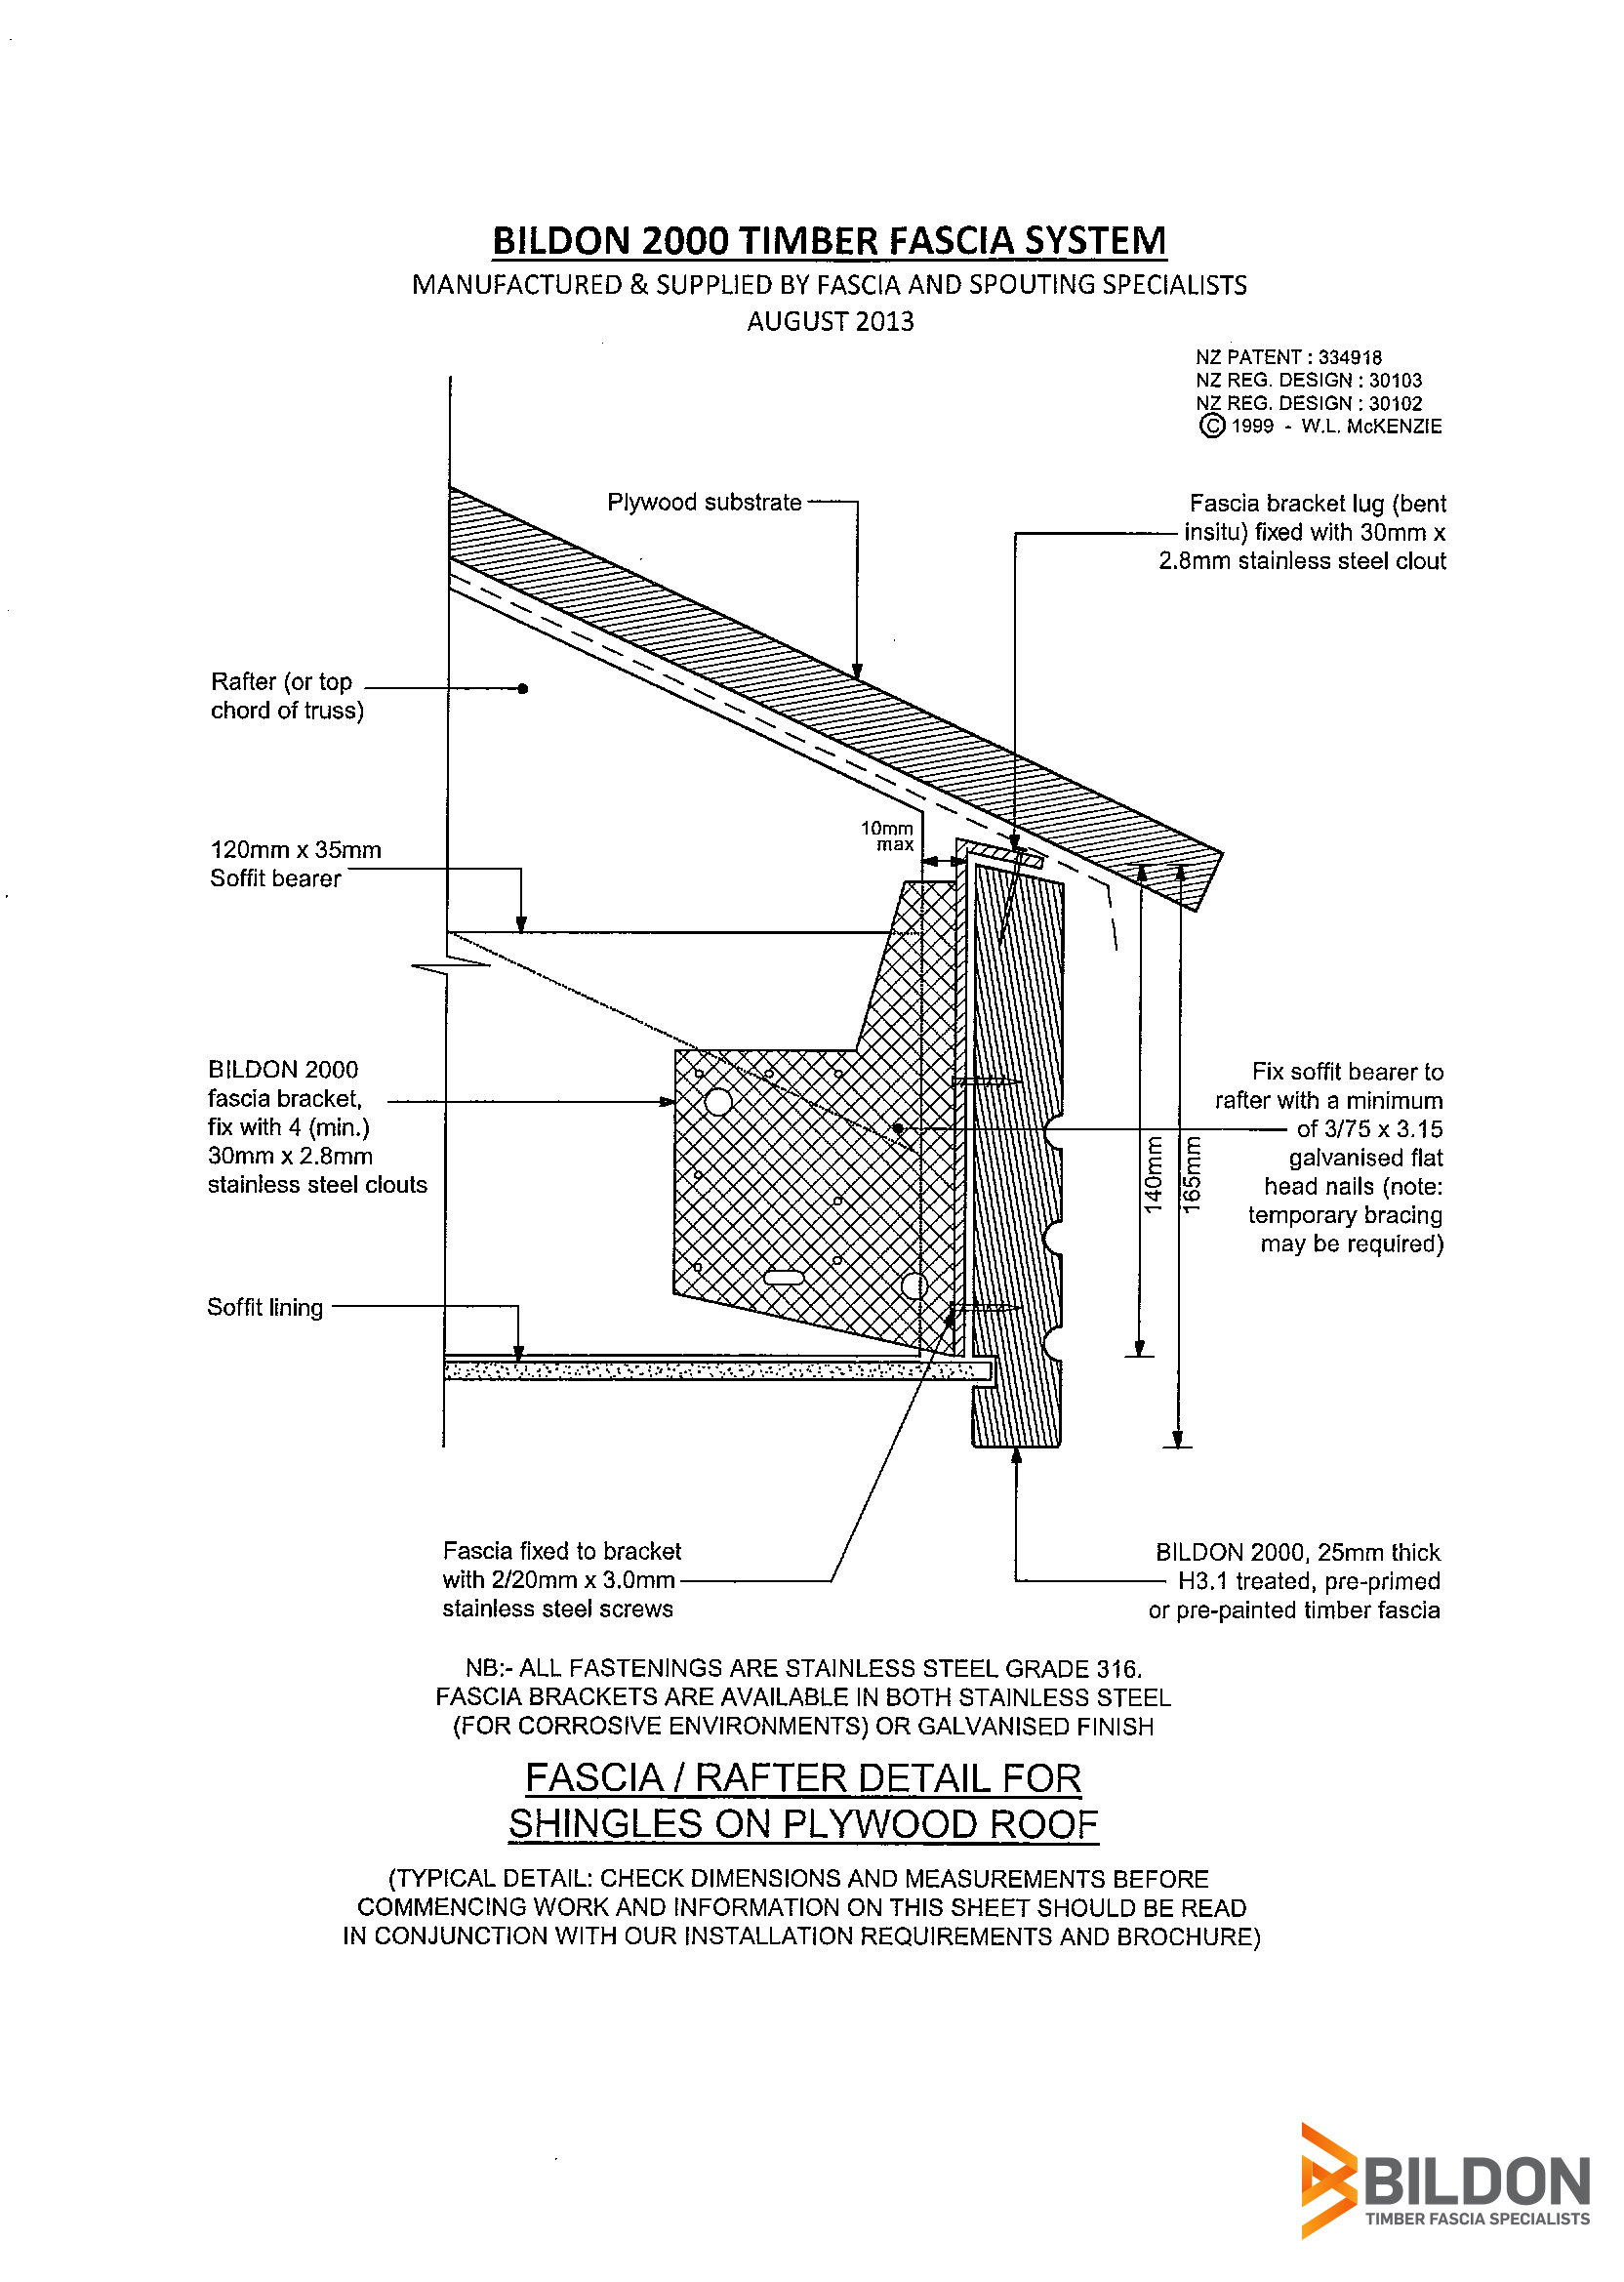 Fascia:Rafter Detail for Shingles on Plywood Roof.jpg